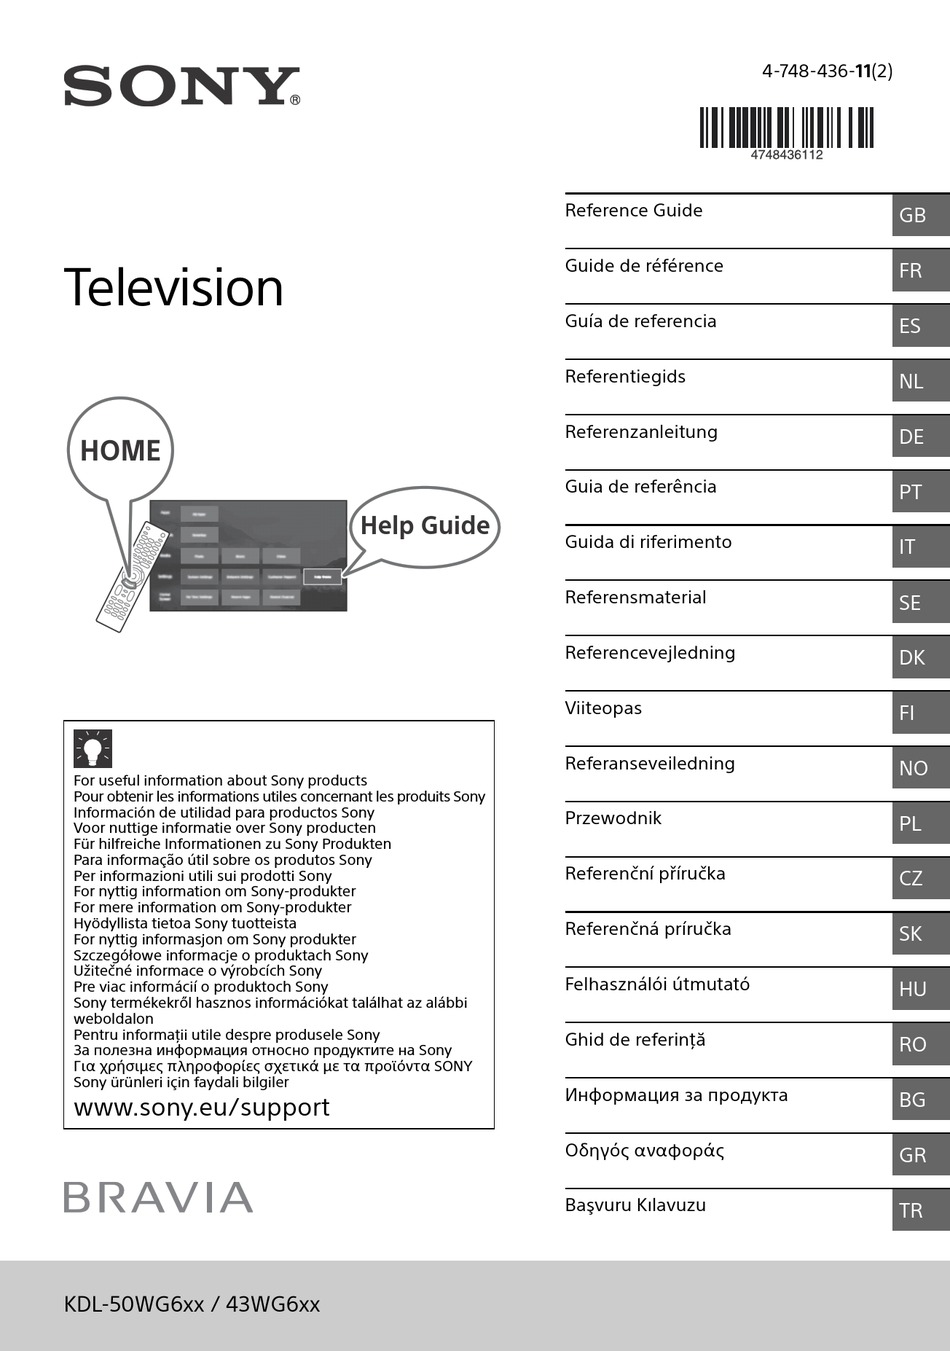 SONY BRAVIA KDL-50WG6 SERIES REFERENCE MANUAL Pdf Download